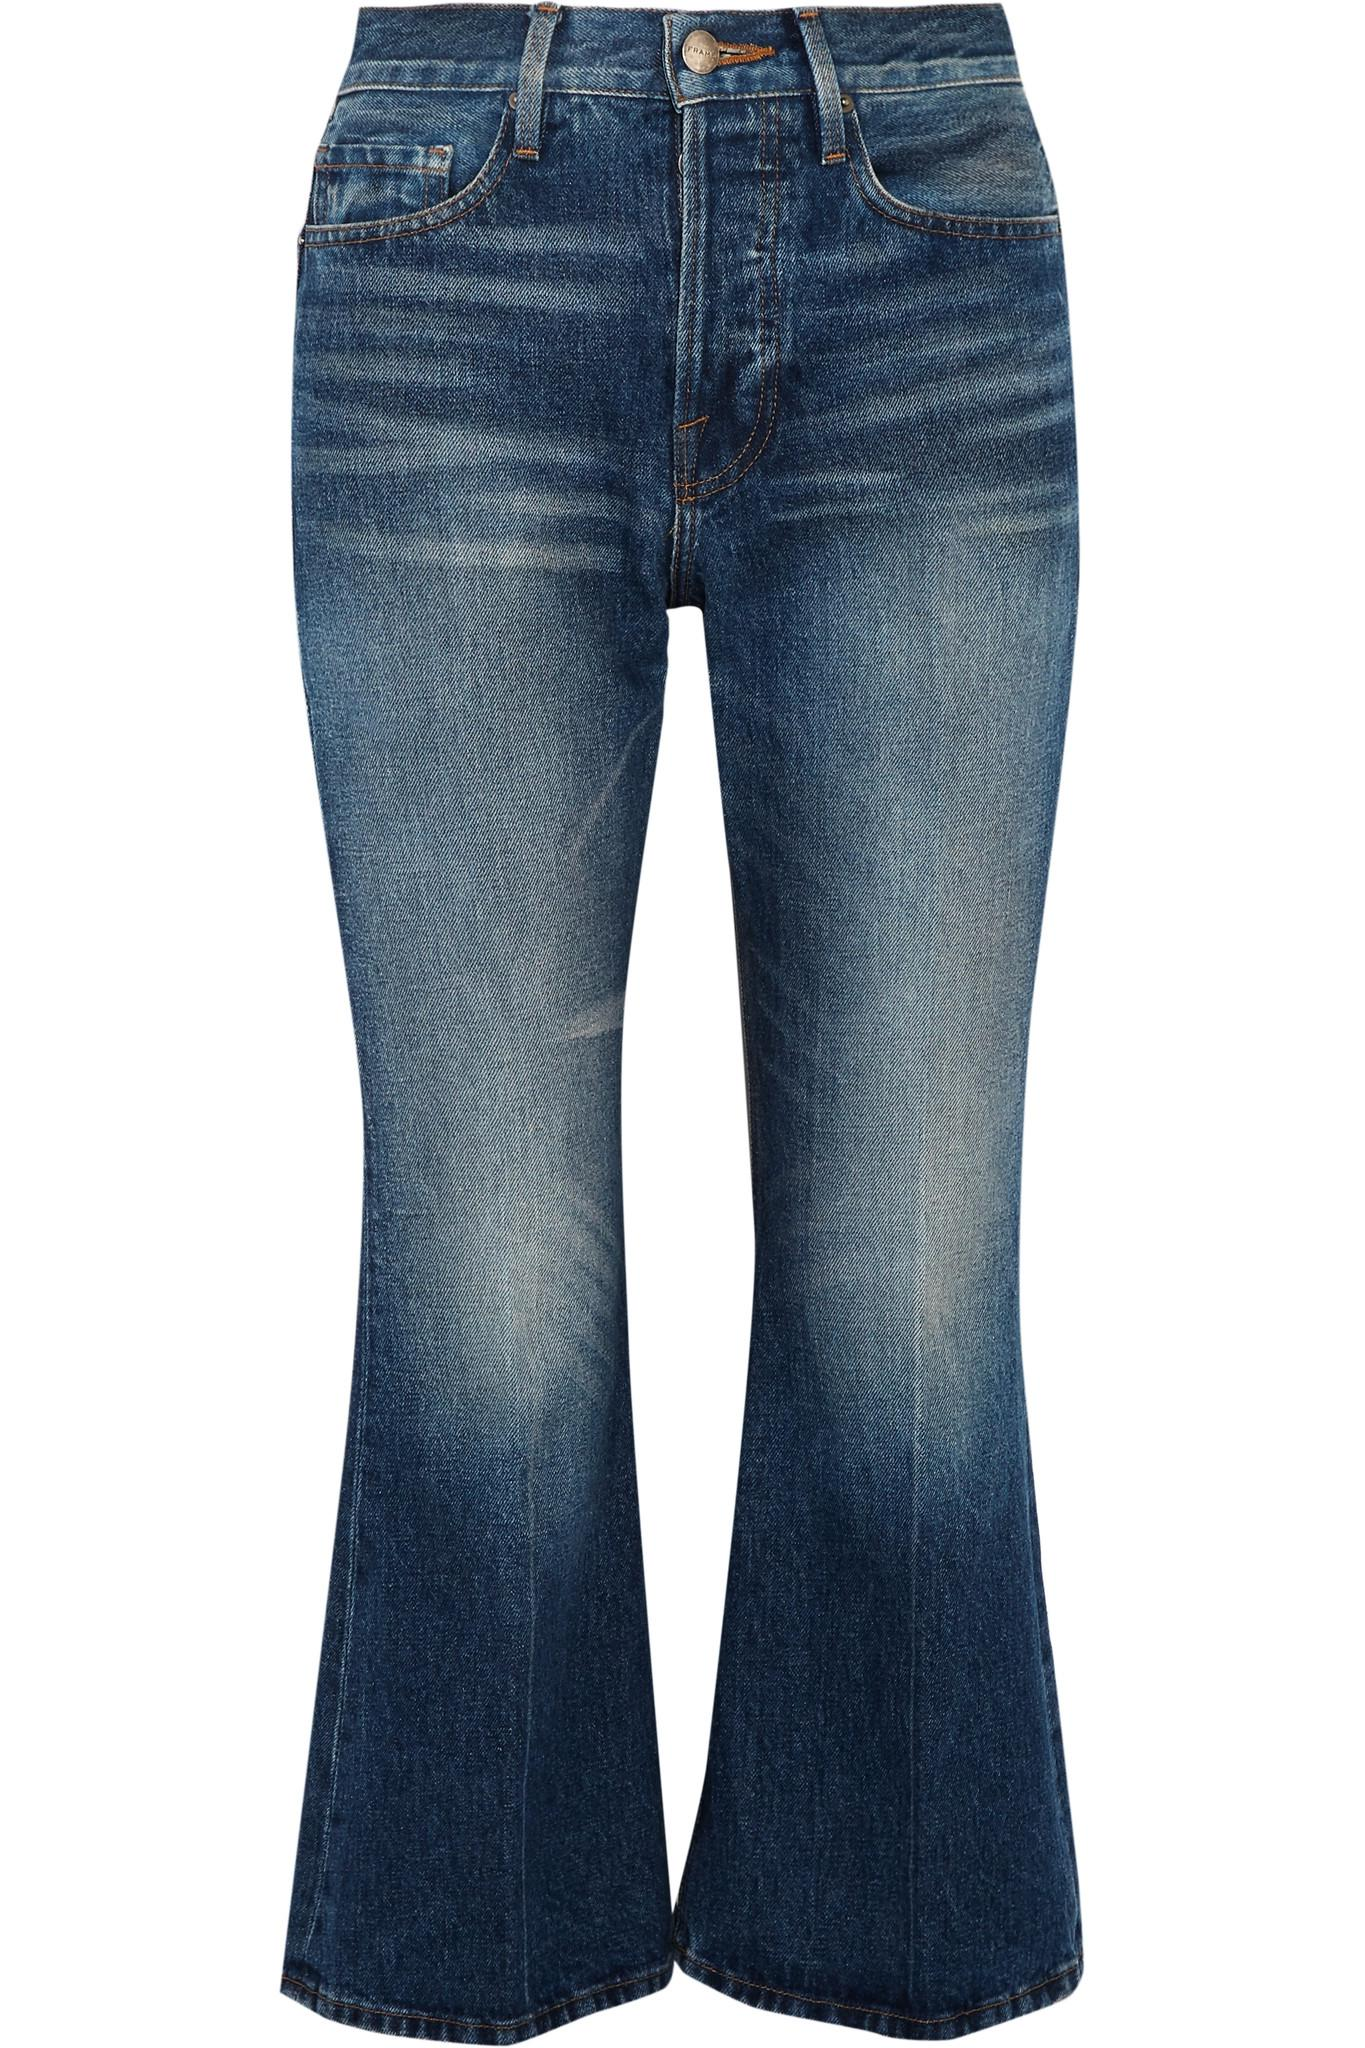 Rigid Re-release Le Cropped High-rise Slim-leg Jeans - Mid denim Frame Denim qsVdgbl